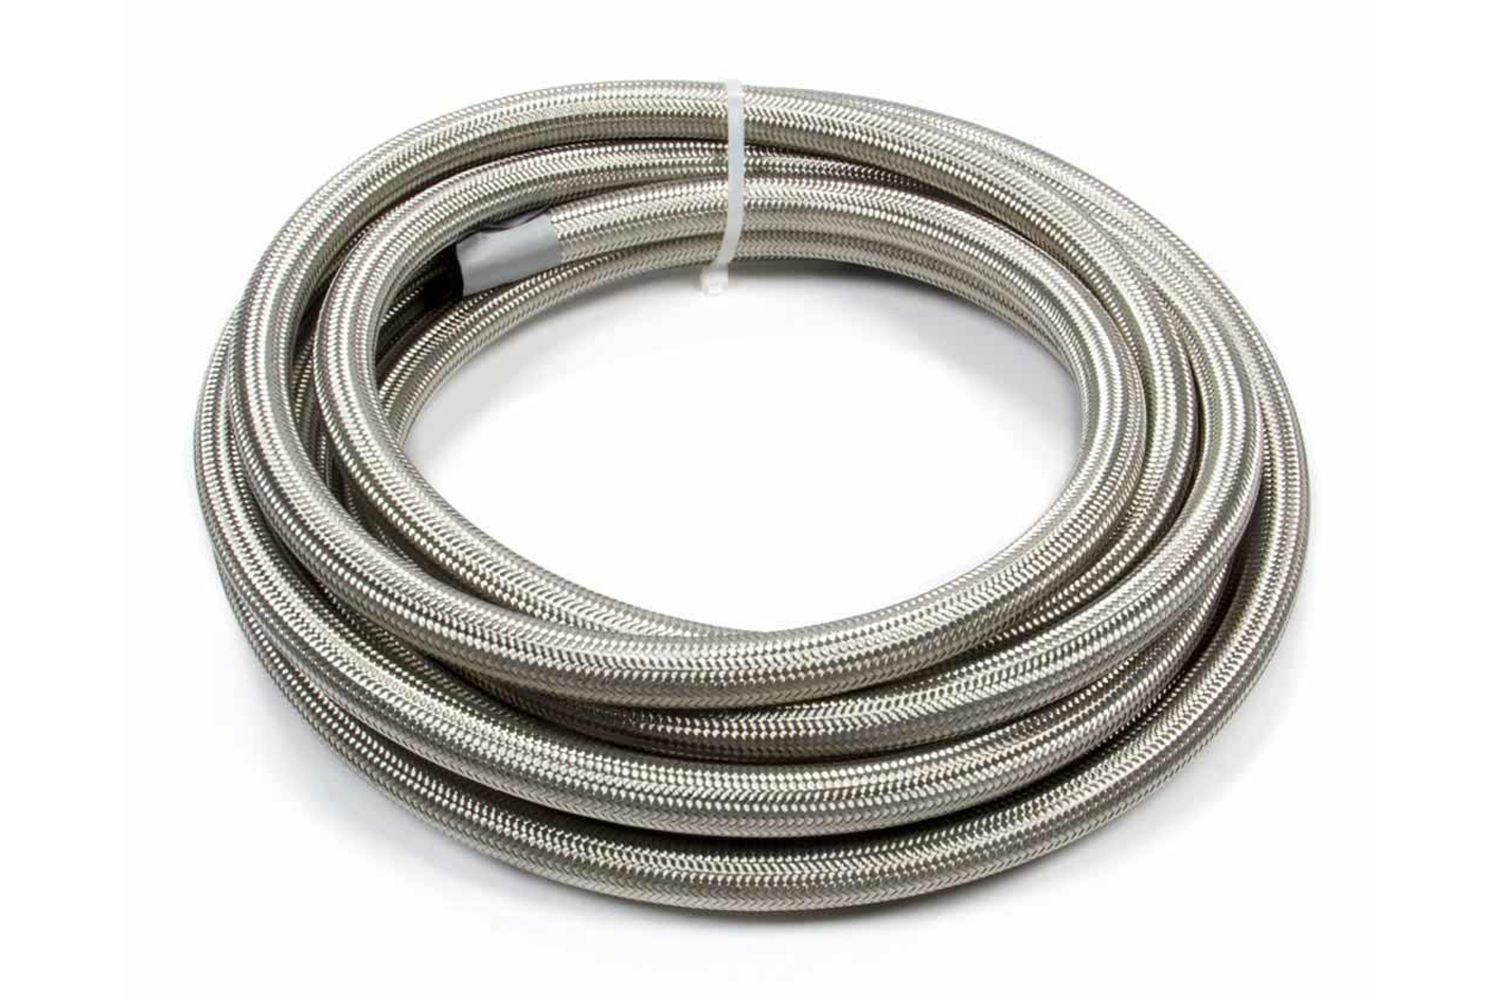 Fragola 720012 Hose, Series 3000, 12 AN, 20 ft, Braided Stainless, Rubber, Natural, Each